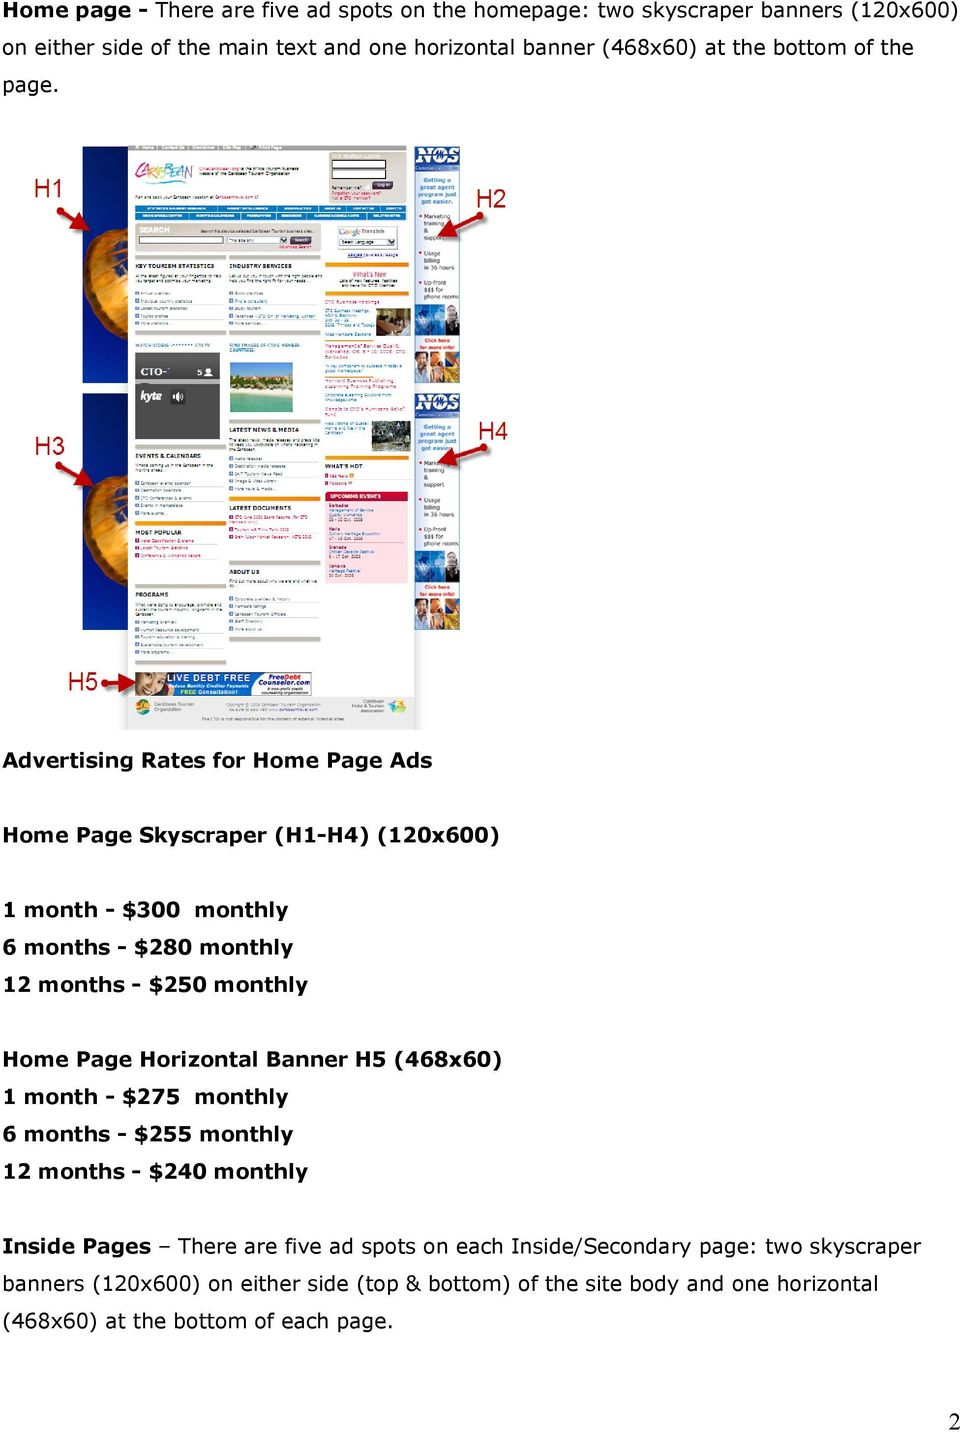 Advertising Rates for Home Page Ads Home Page Skyscraper (H1-H4) (120x600) 1 month - $300 monthly 6 months - $280 monthly 12 months - $250 monthly Home Page